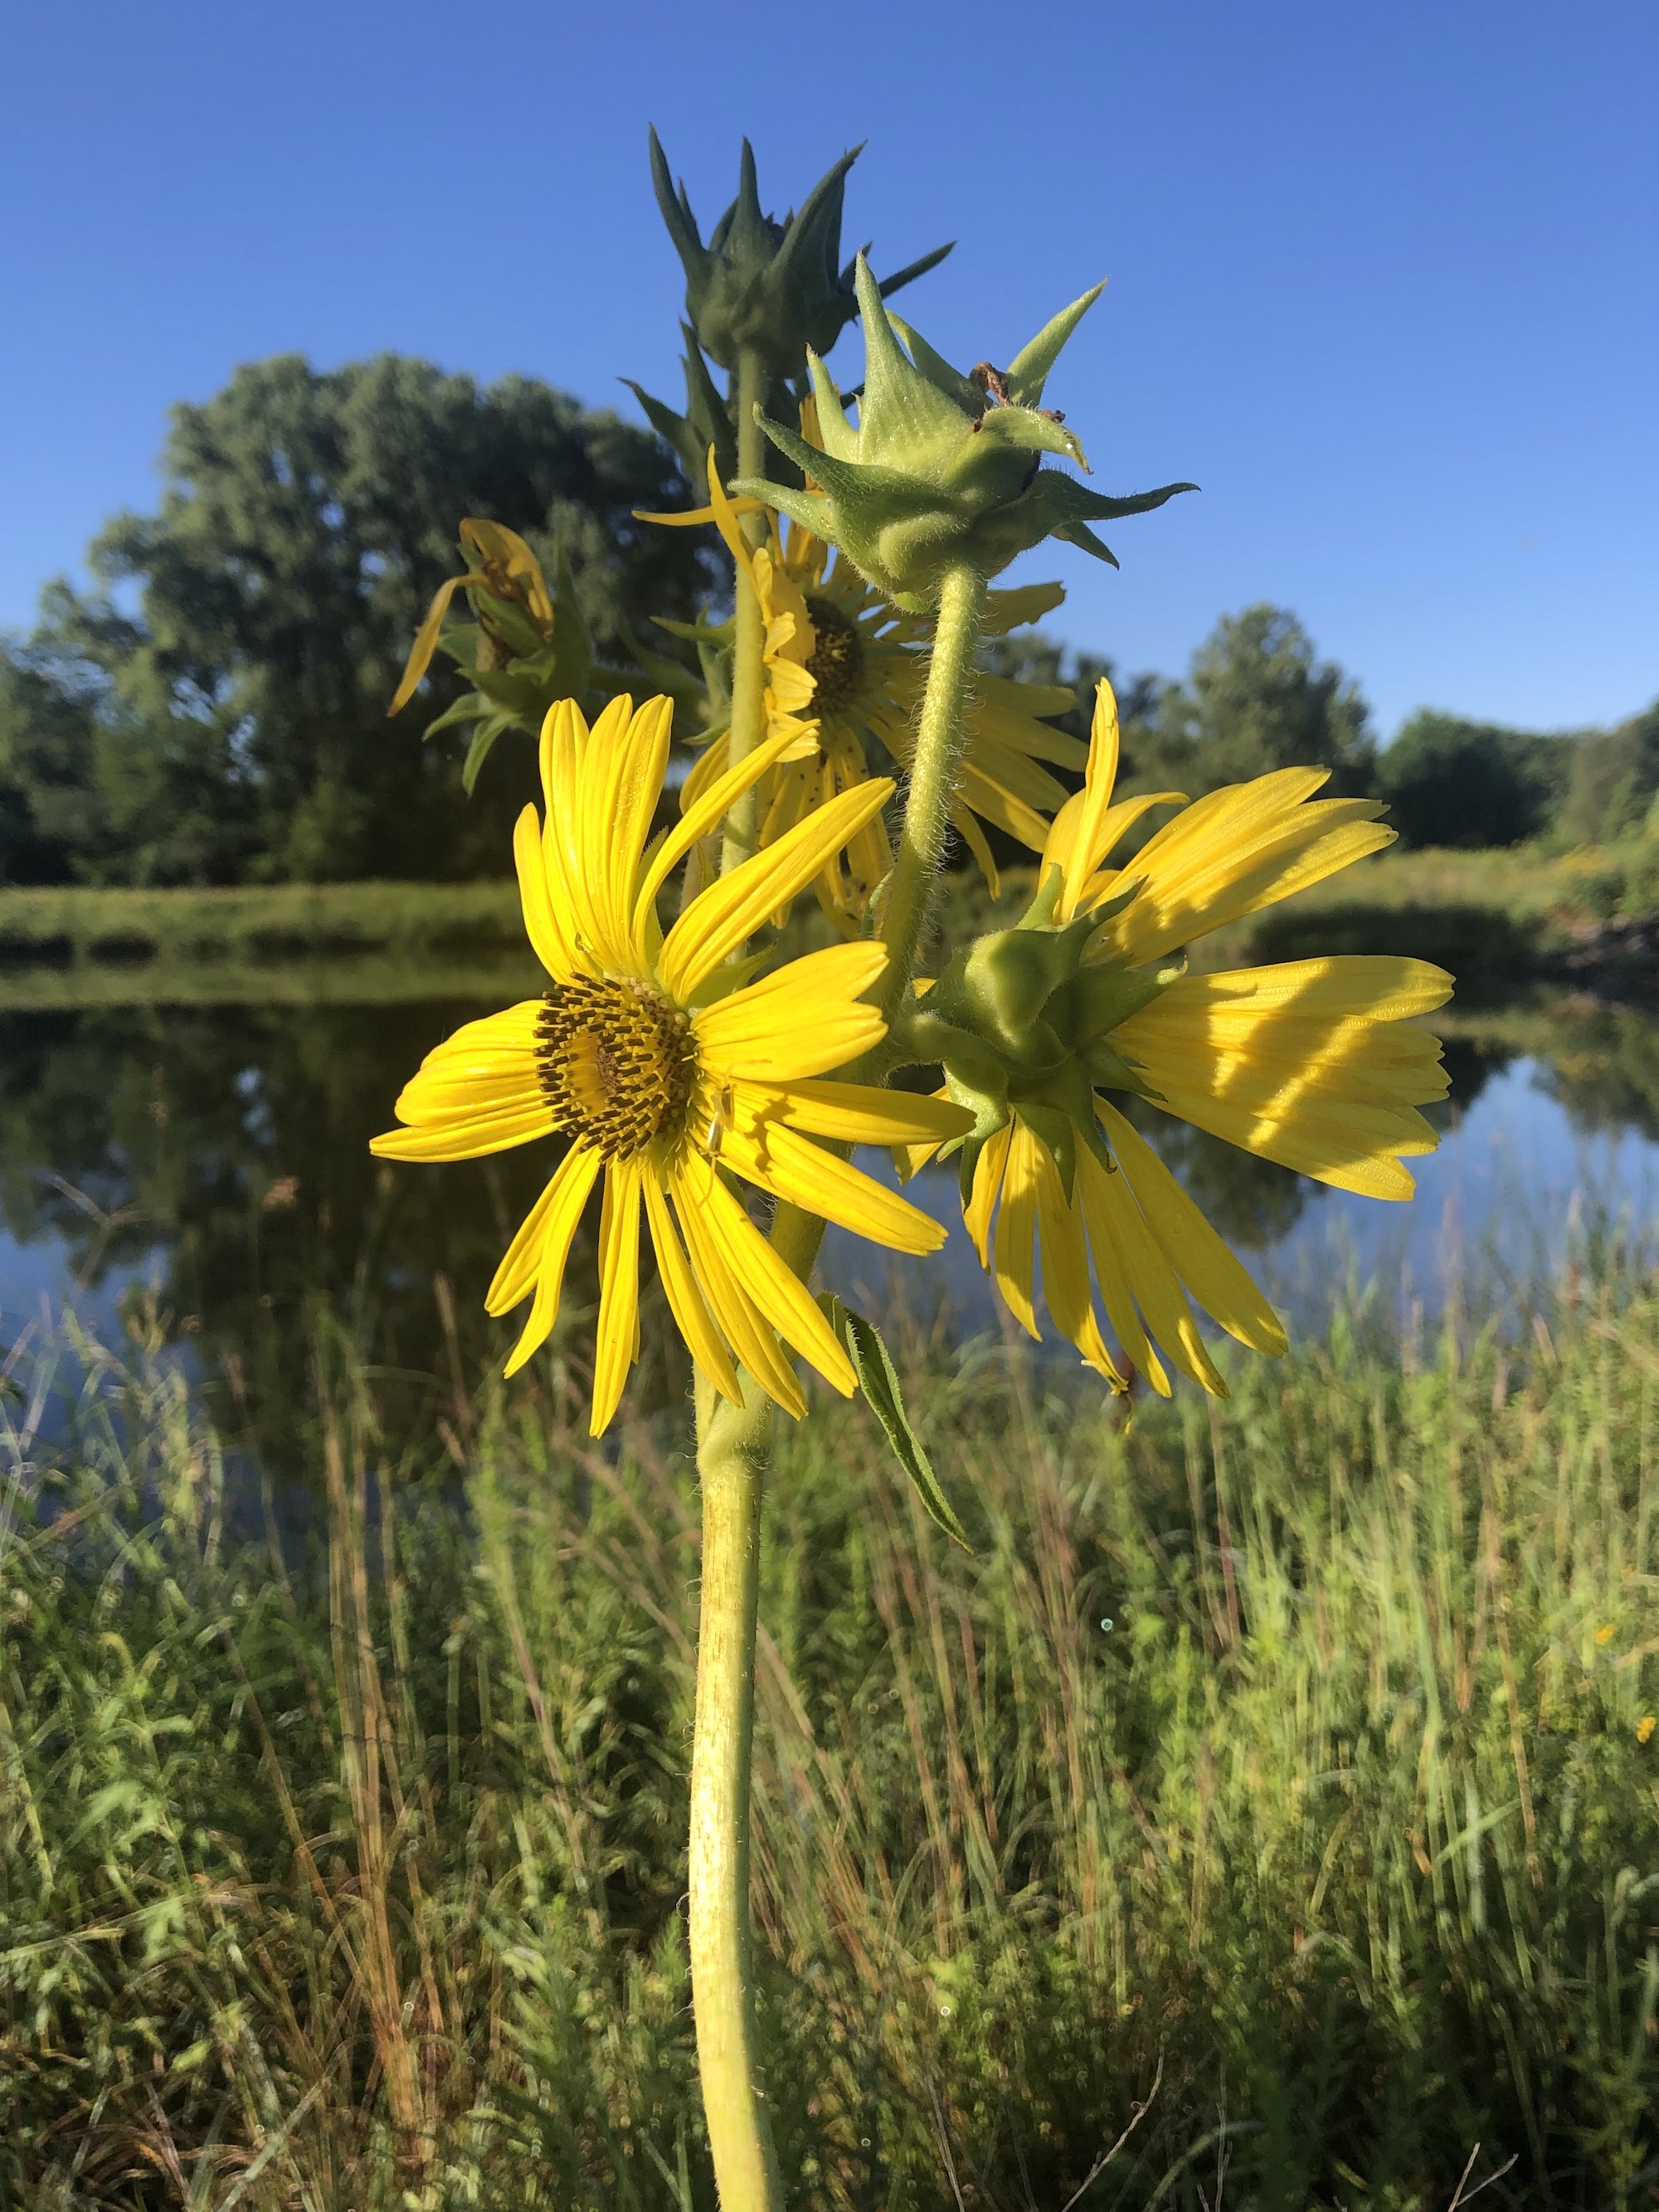 Compass Plant on the shore of the retaining pond on the corner of Nakoma Road and Manitou Way in Madison, Wisconsin on August 11, 2020.